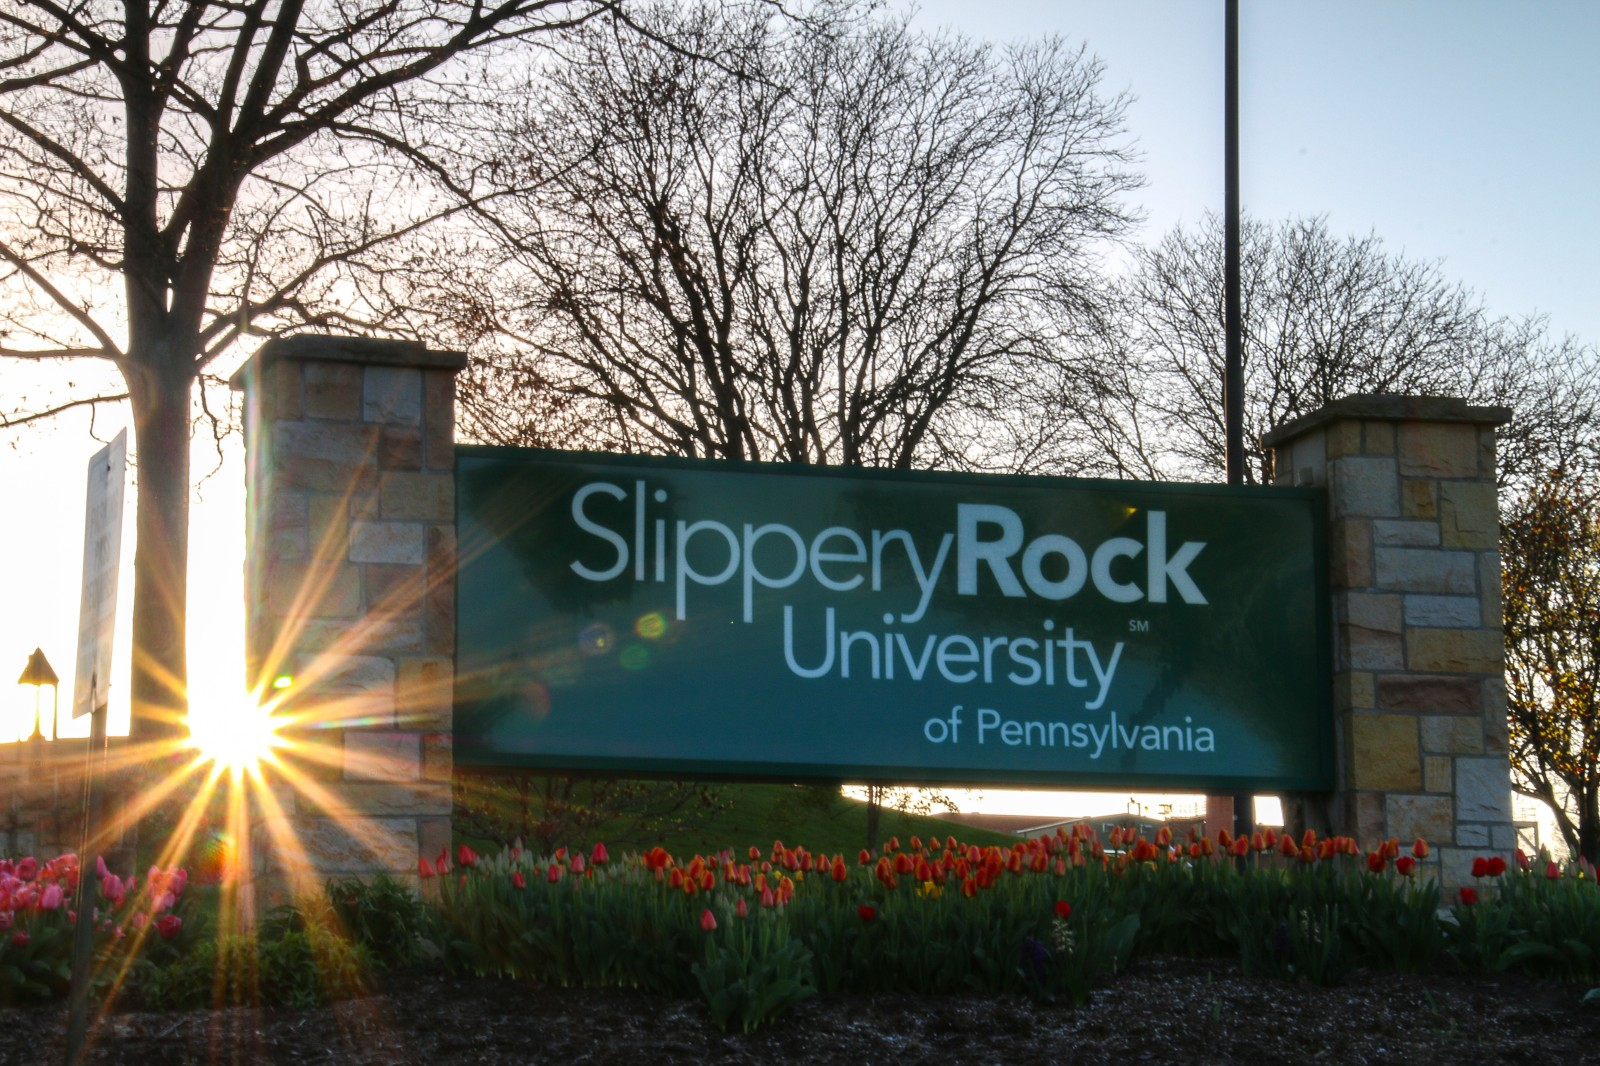 Slippery Rock University sign